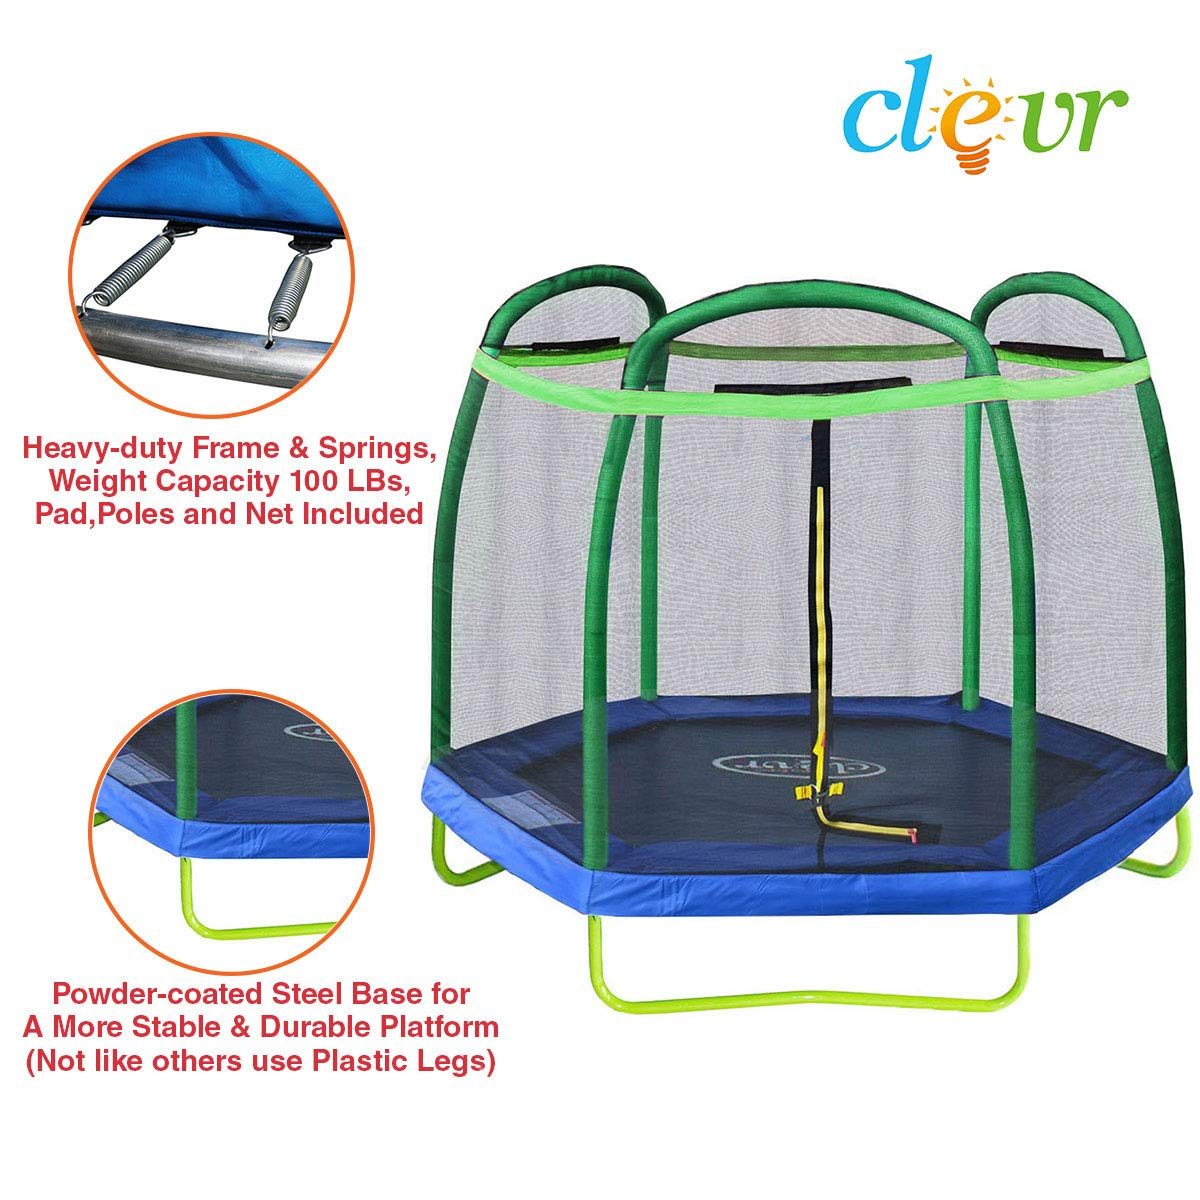 Clevr 7ft Kids Trampoline with Safety Enclosure Net & Spring Pad, 7-Foot Outdoor Round Bounce Jumper 84'' Indoor/Outdoor, Built-in Zipper Heavy Duty Frame, Green and Blue | Great Birthday Gift by Clevr (Image #2)